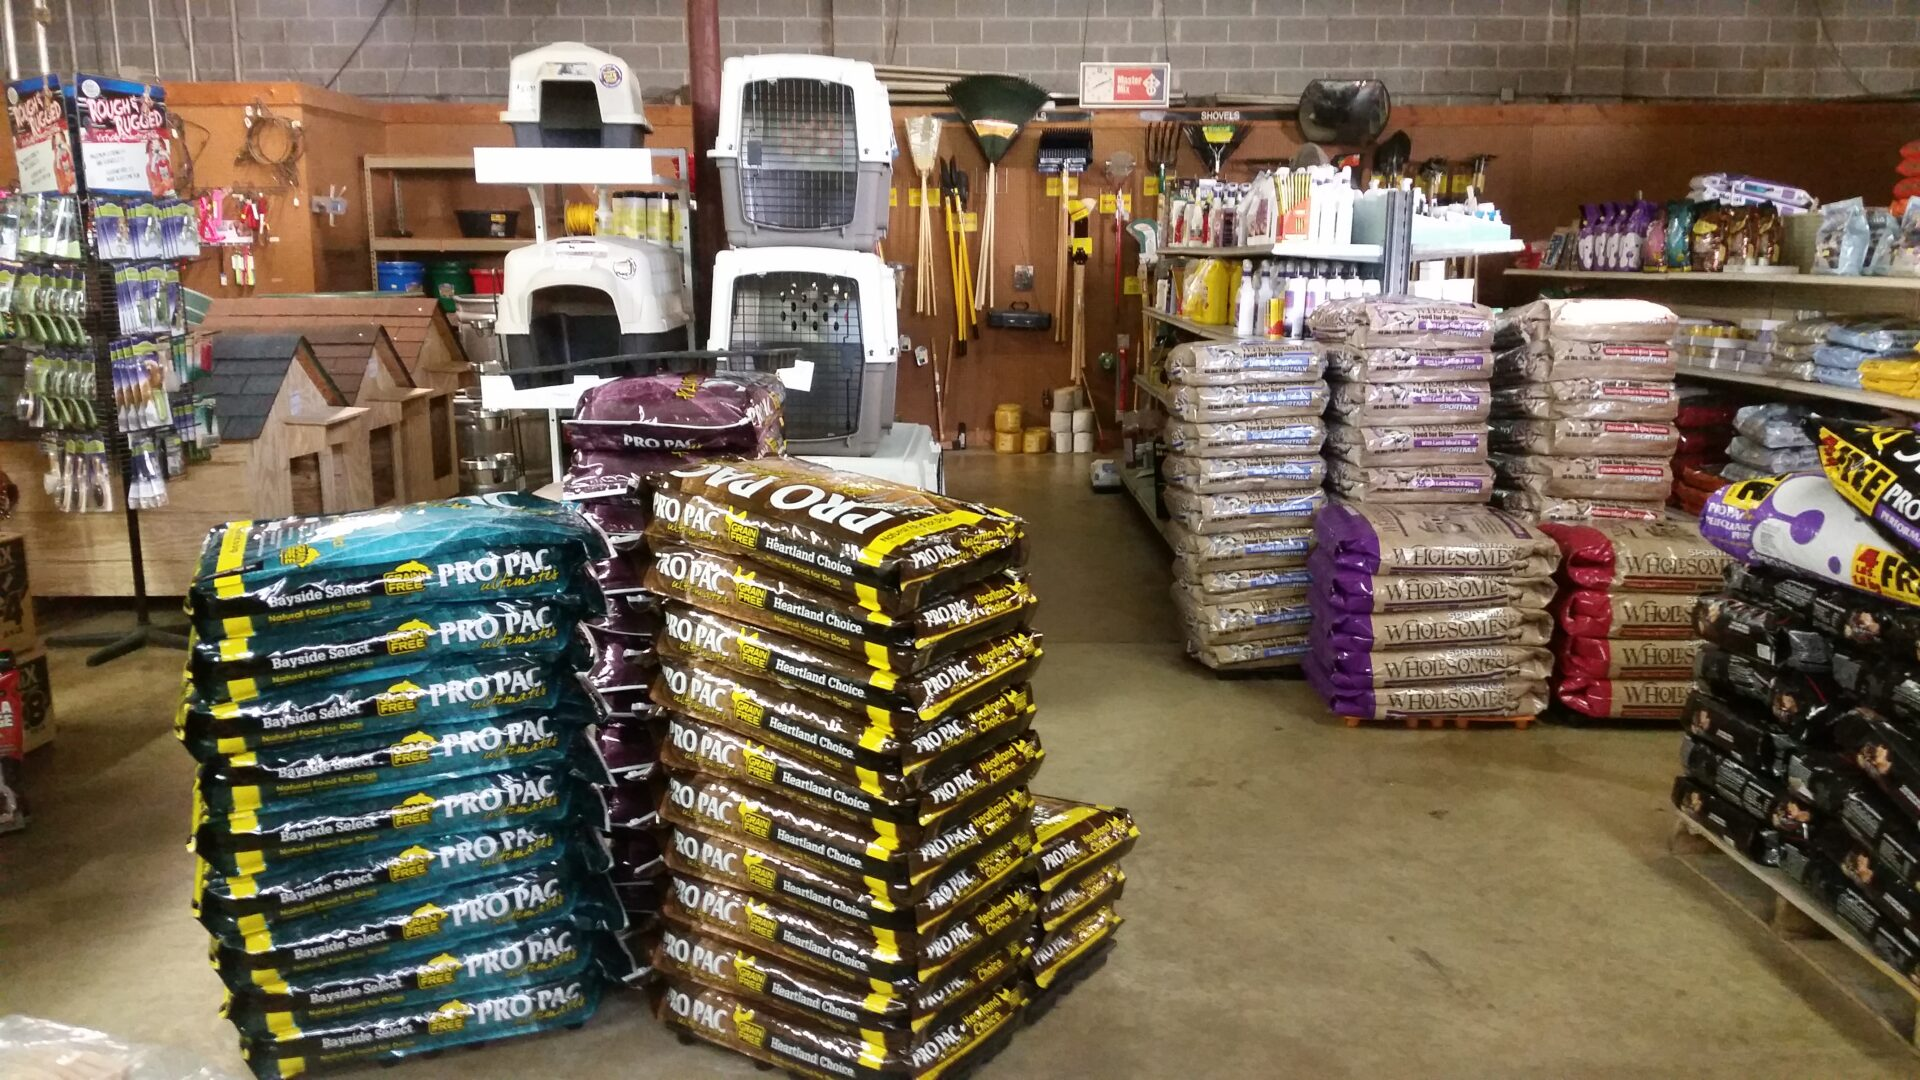 standard-feed-and-seed-dog-food-and-supplies